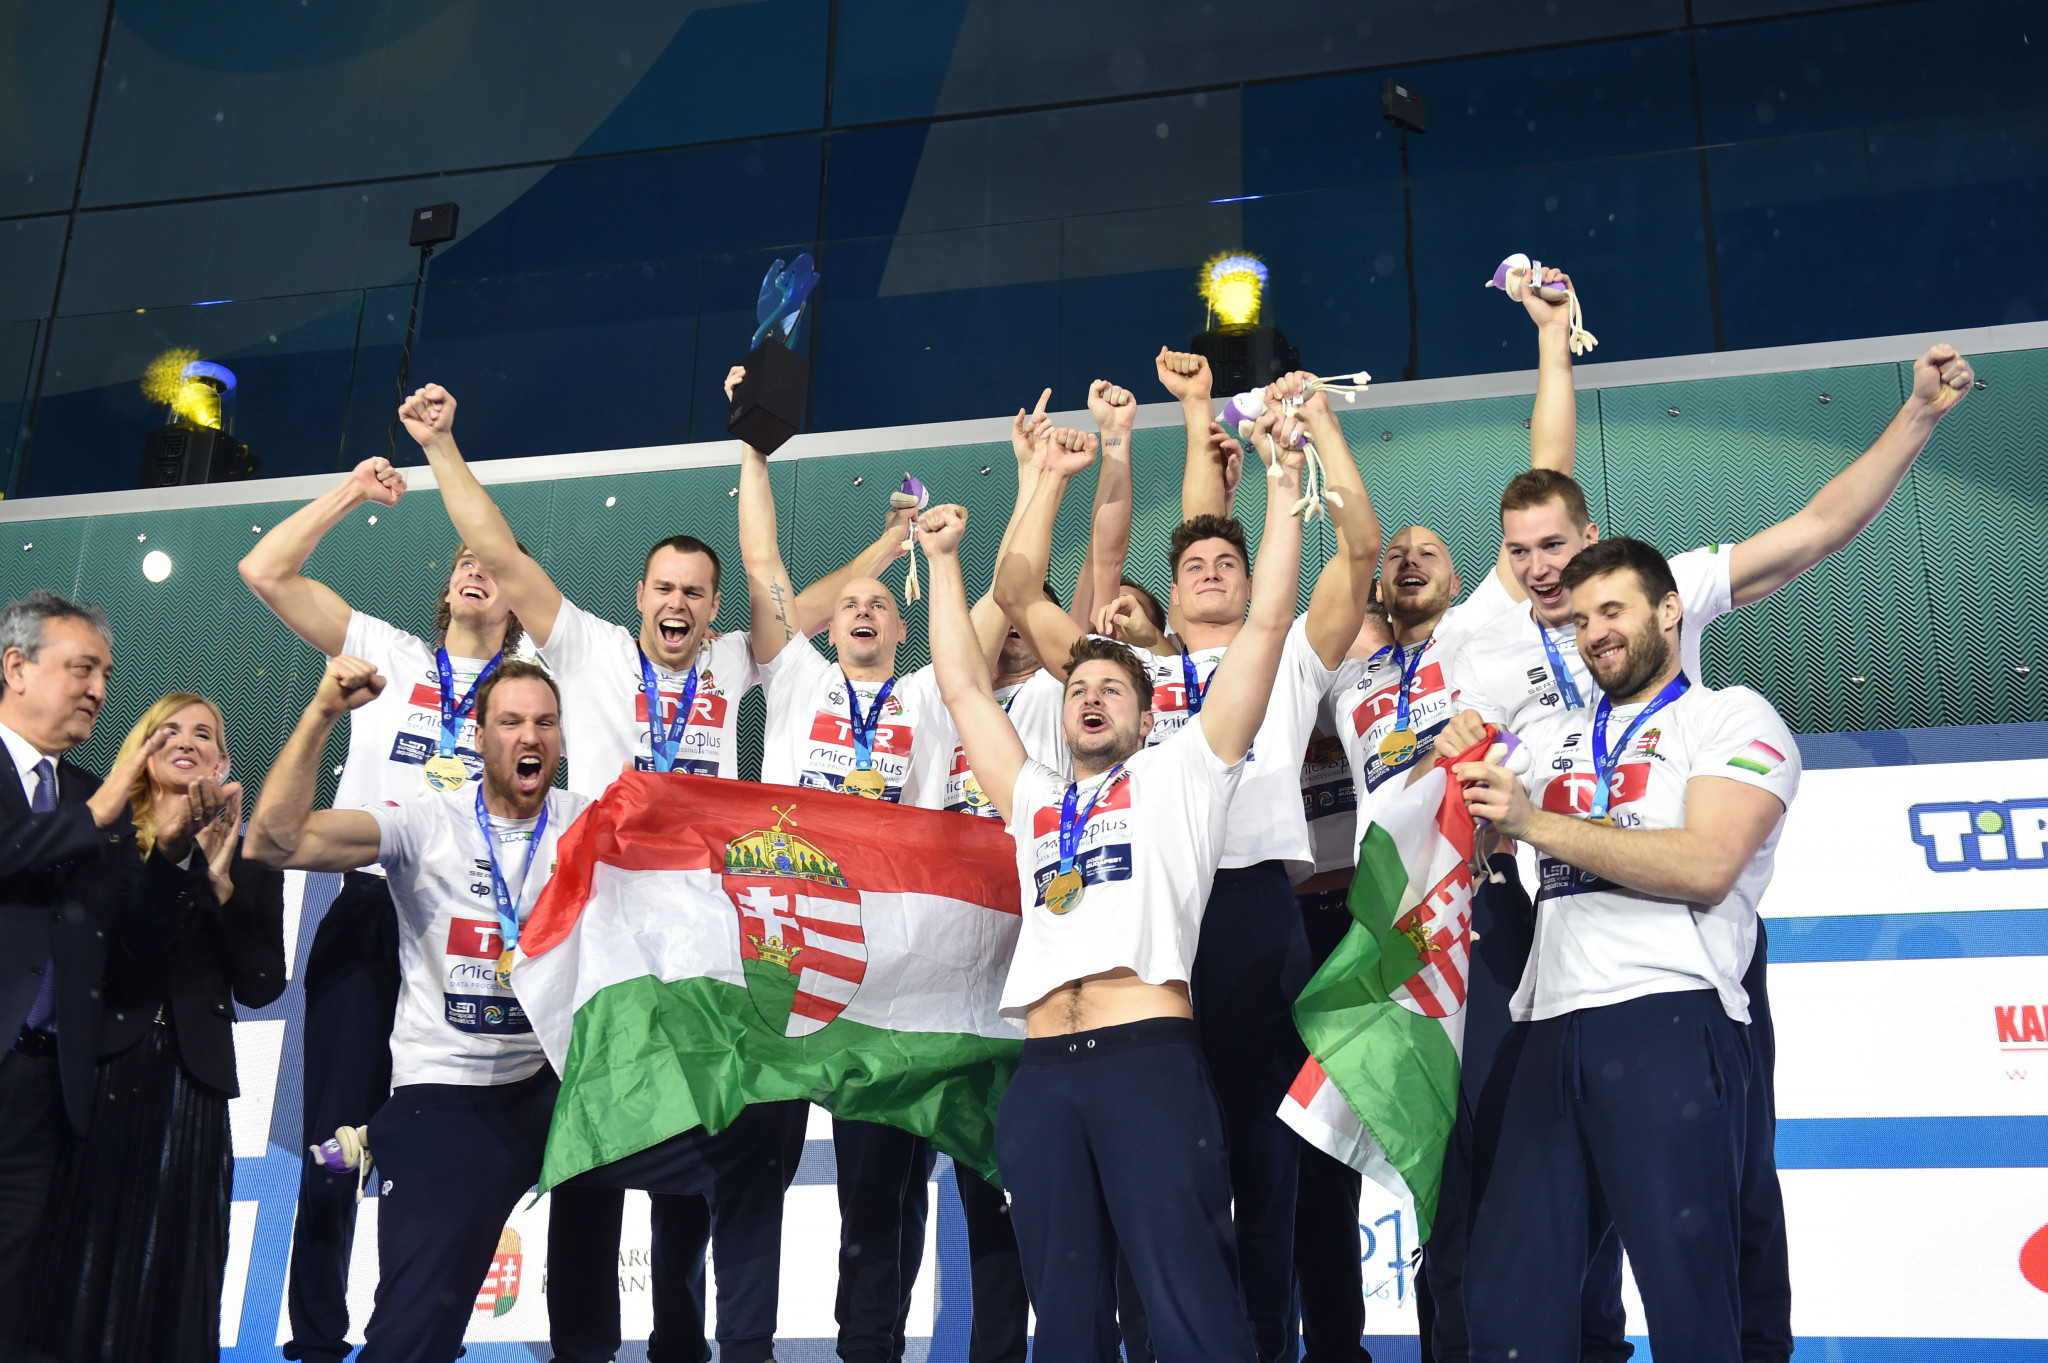 Hungary defeated Spain in a penalty shootout to win the Men's European Water Polo Championship ©Getty Images